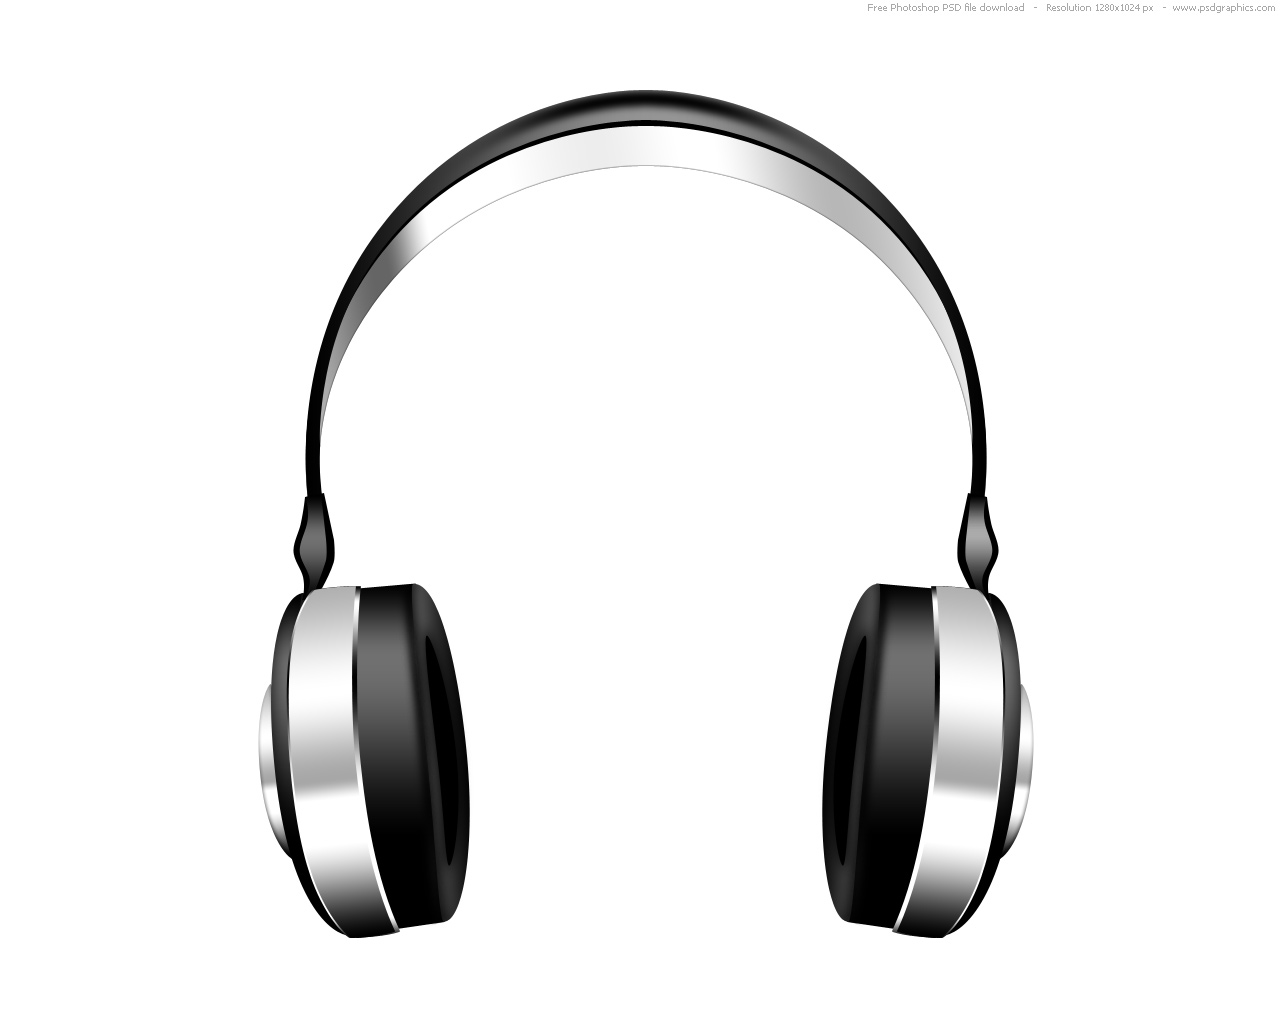 Full size – JPG preview: Headphones icon